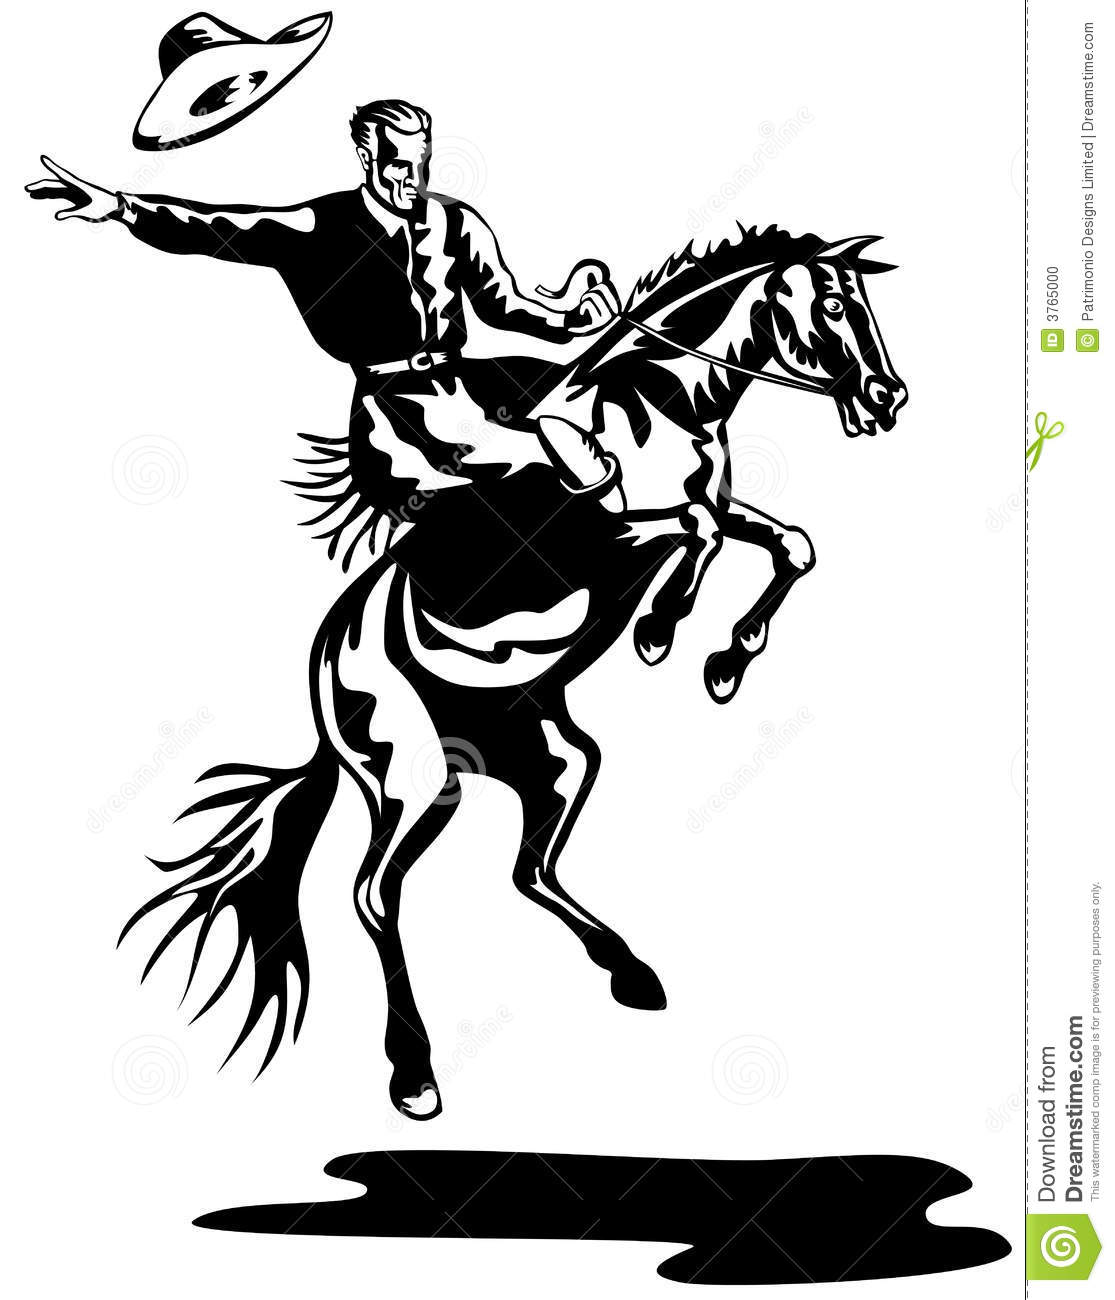 Cowboy clipart bronc riding Riding Bronco Bronc collection A